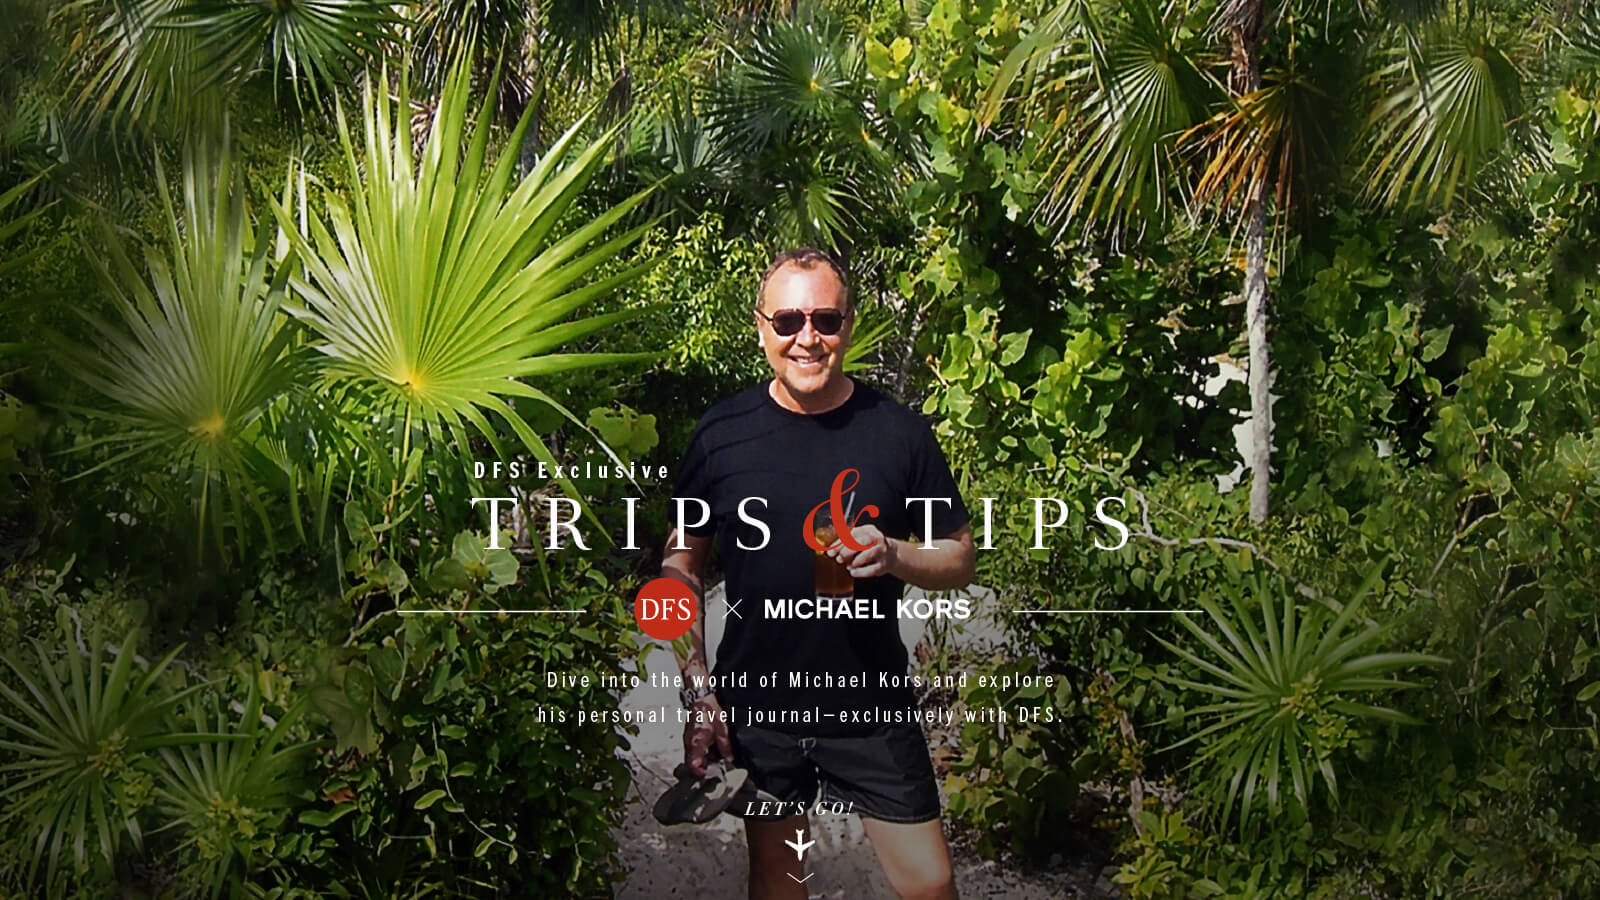 Global T&T_MichaelKors_desktop_EN_01.jpg